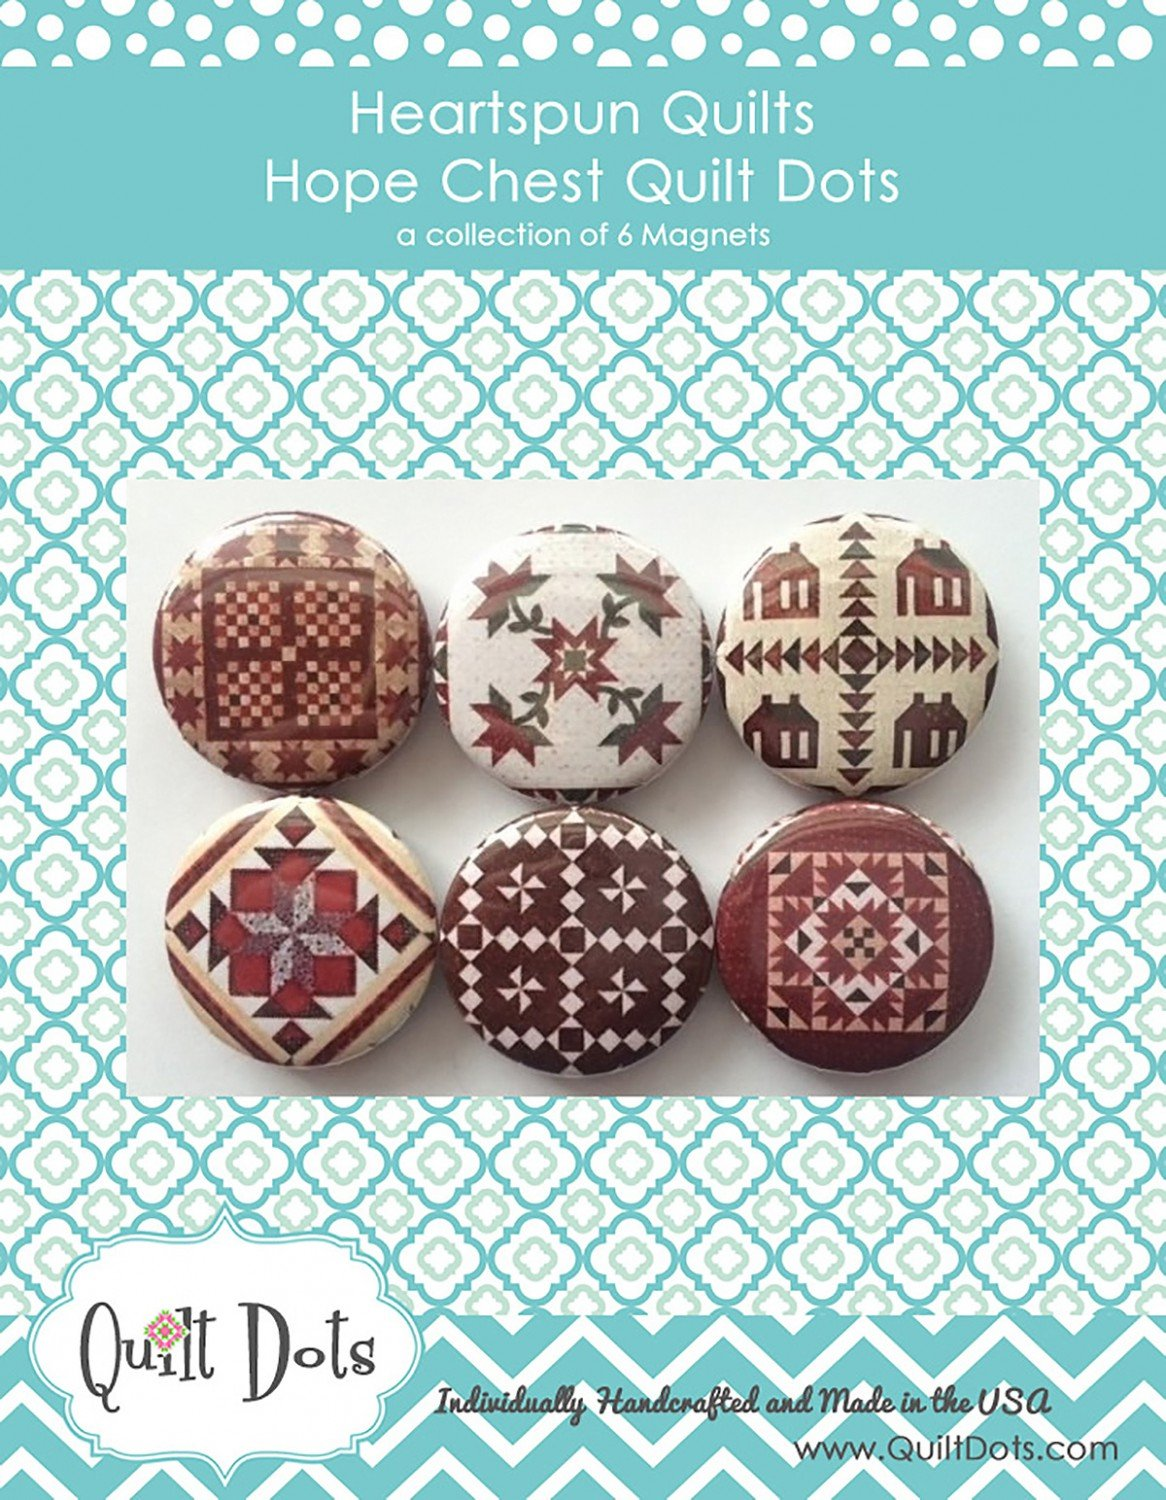 Heartspun Quilts Hope Chest 6 Magnets